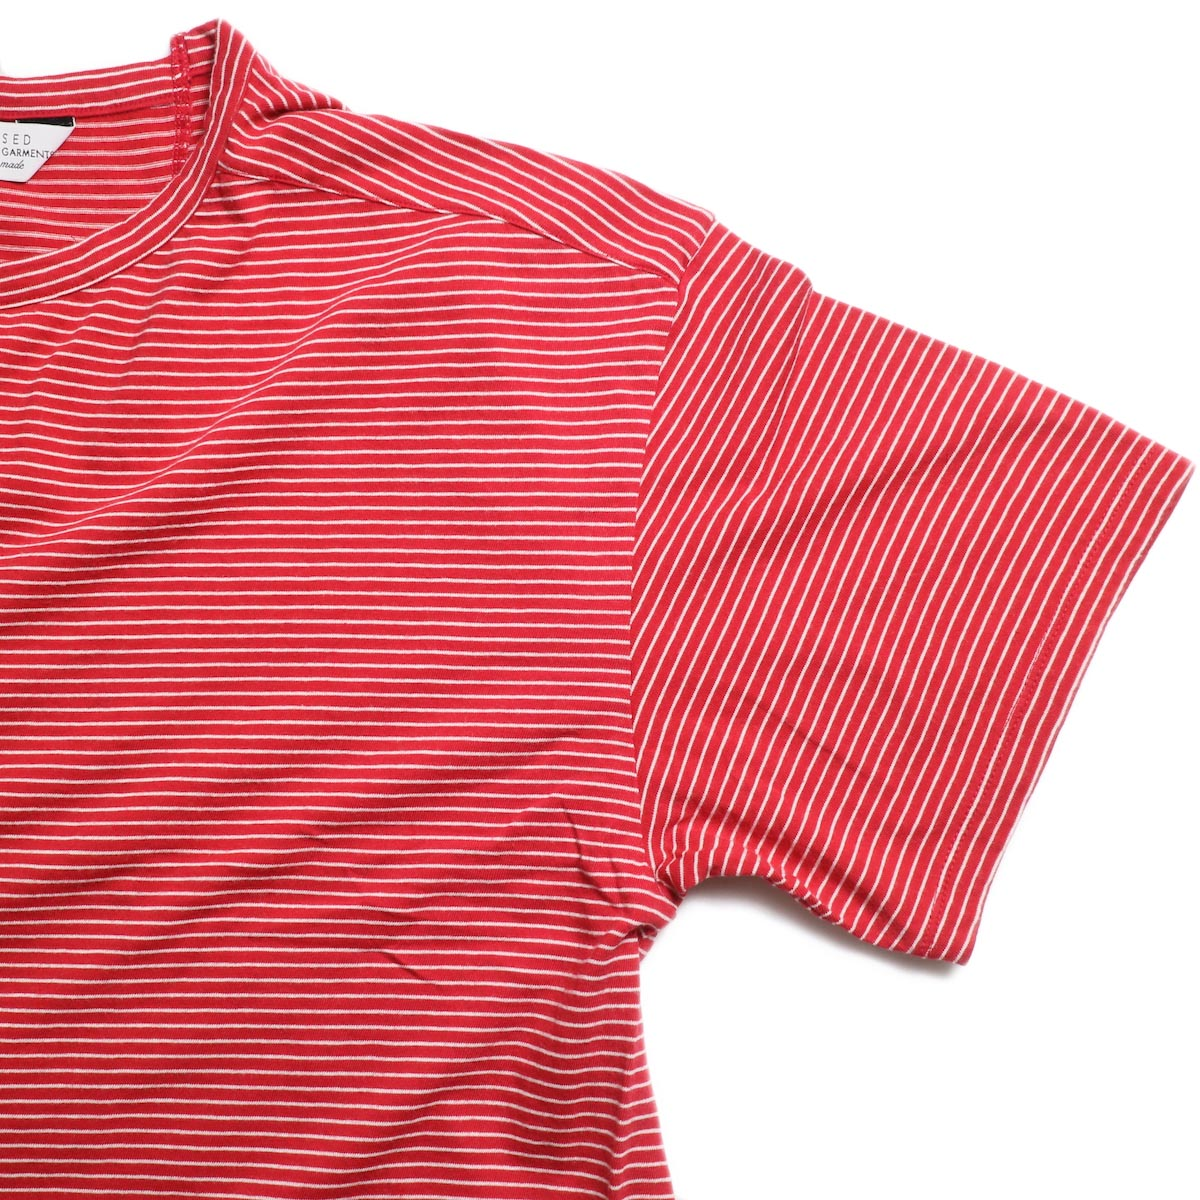 UNUSED / US1546 Border S/S Tee (Red×White) 袖